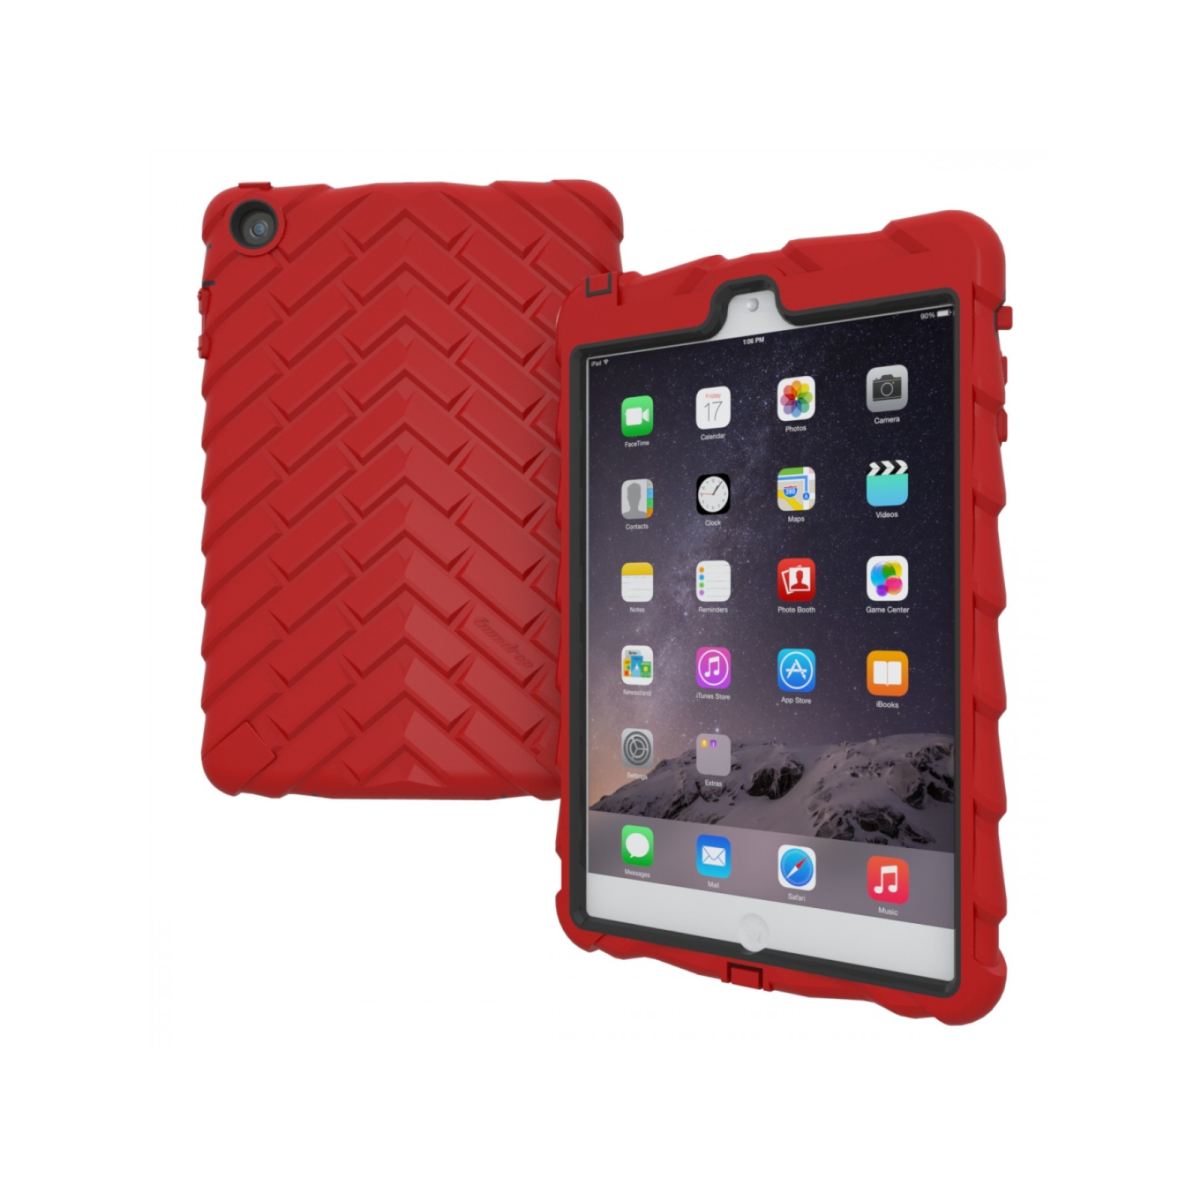 Gumdrop iPad Mini 3 Drop Tech Case in Red